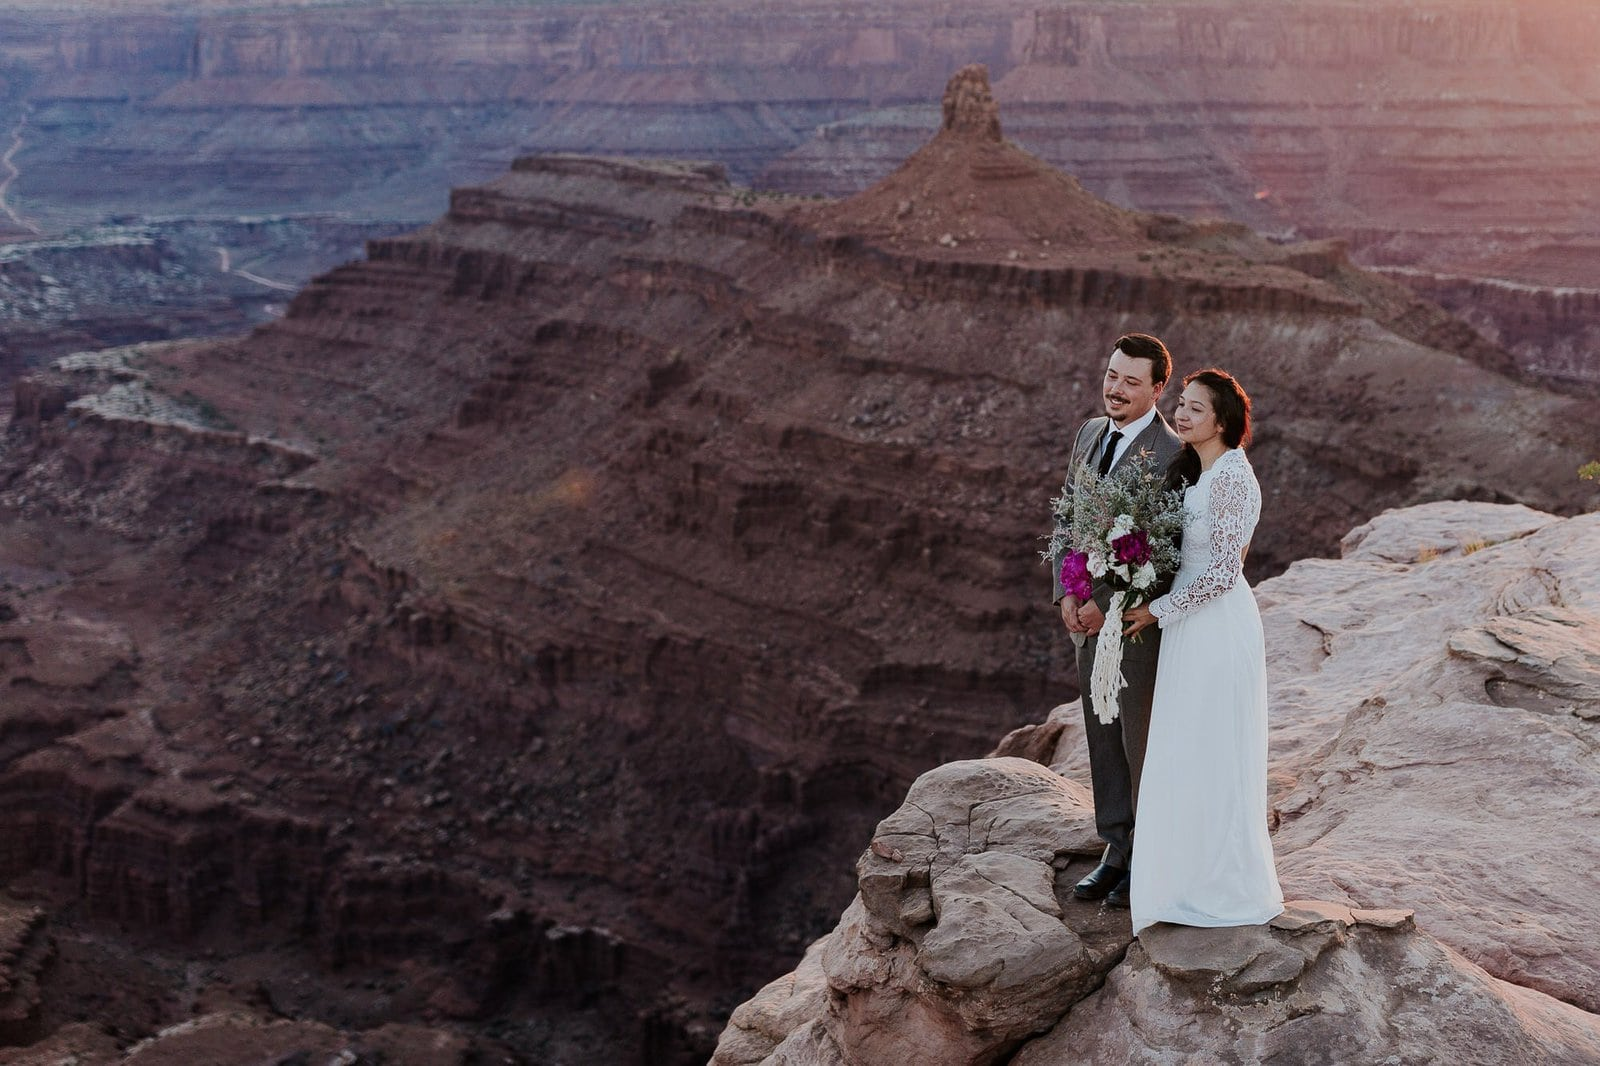 Elopement in the desert of Utah.